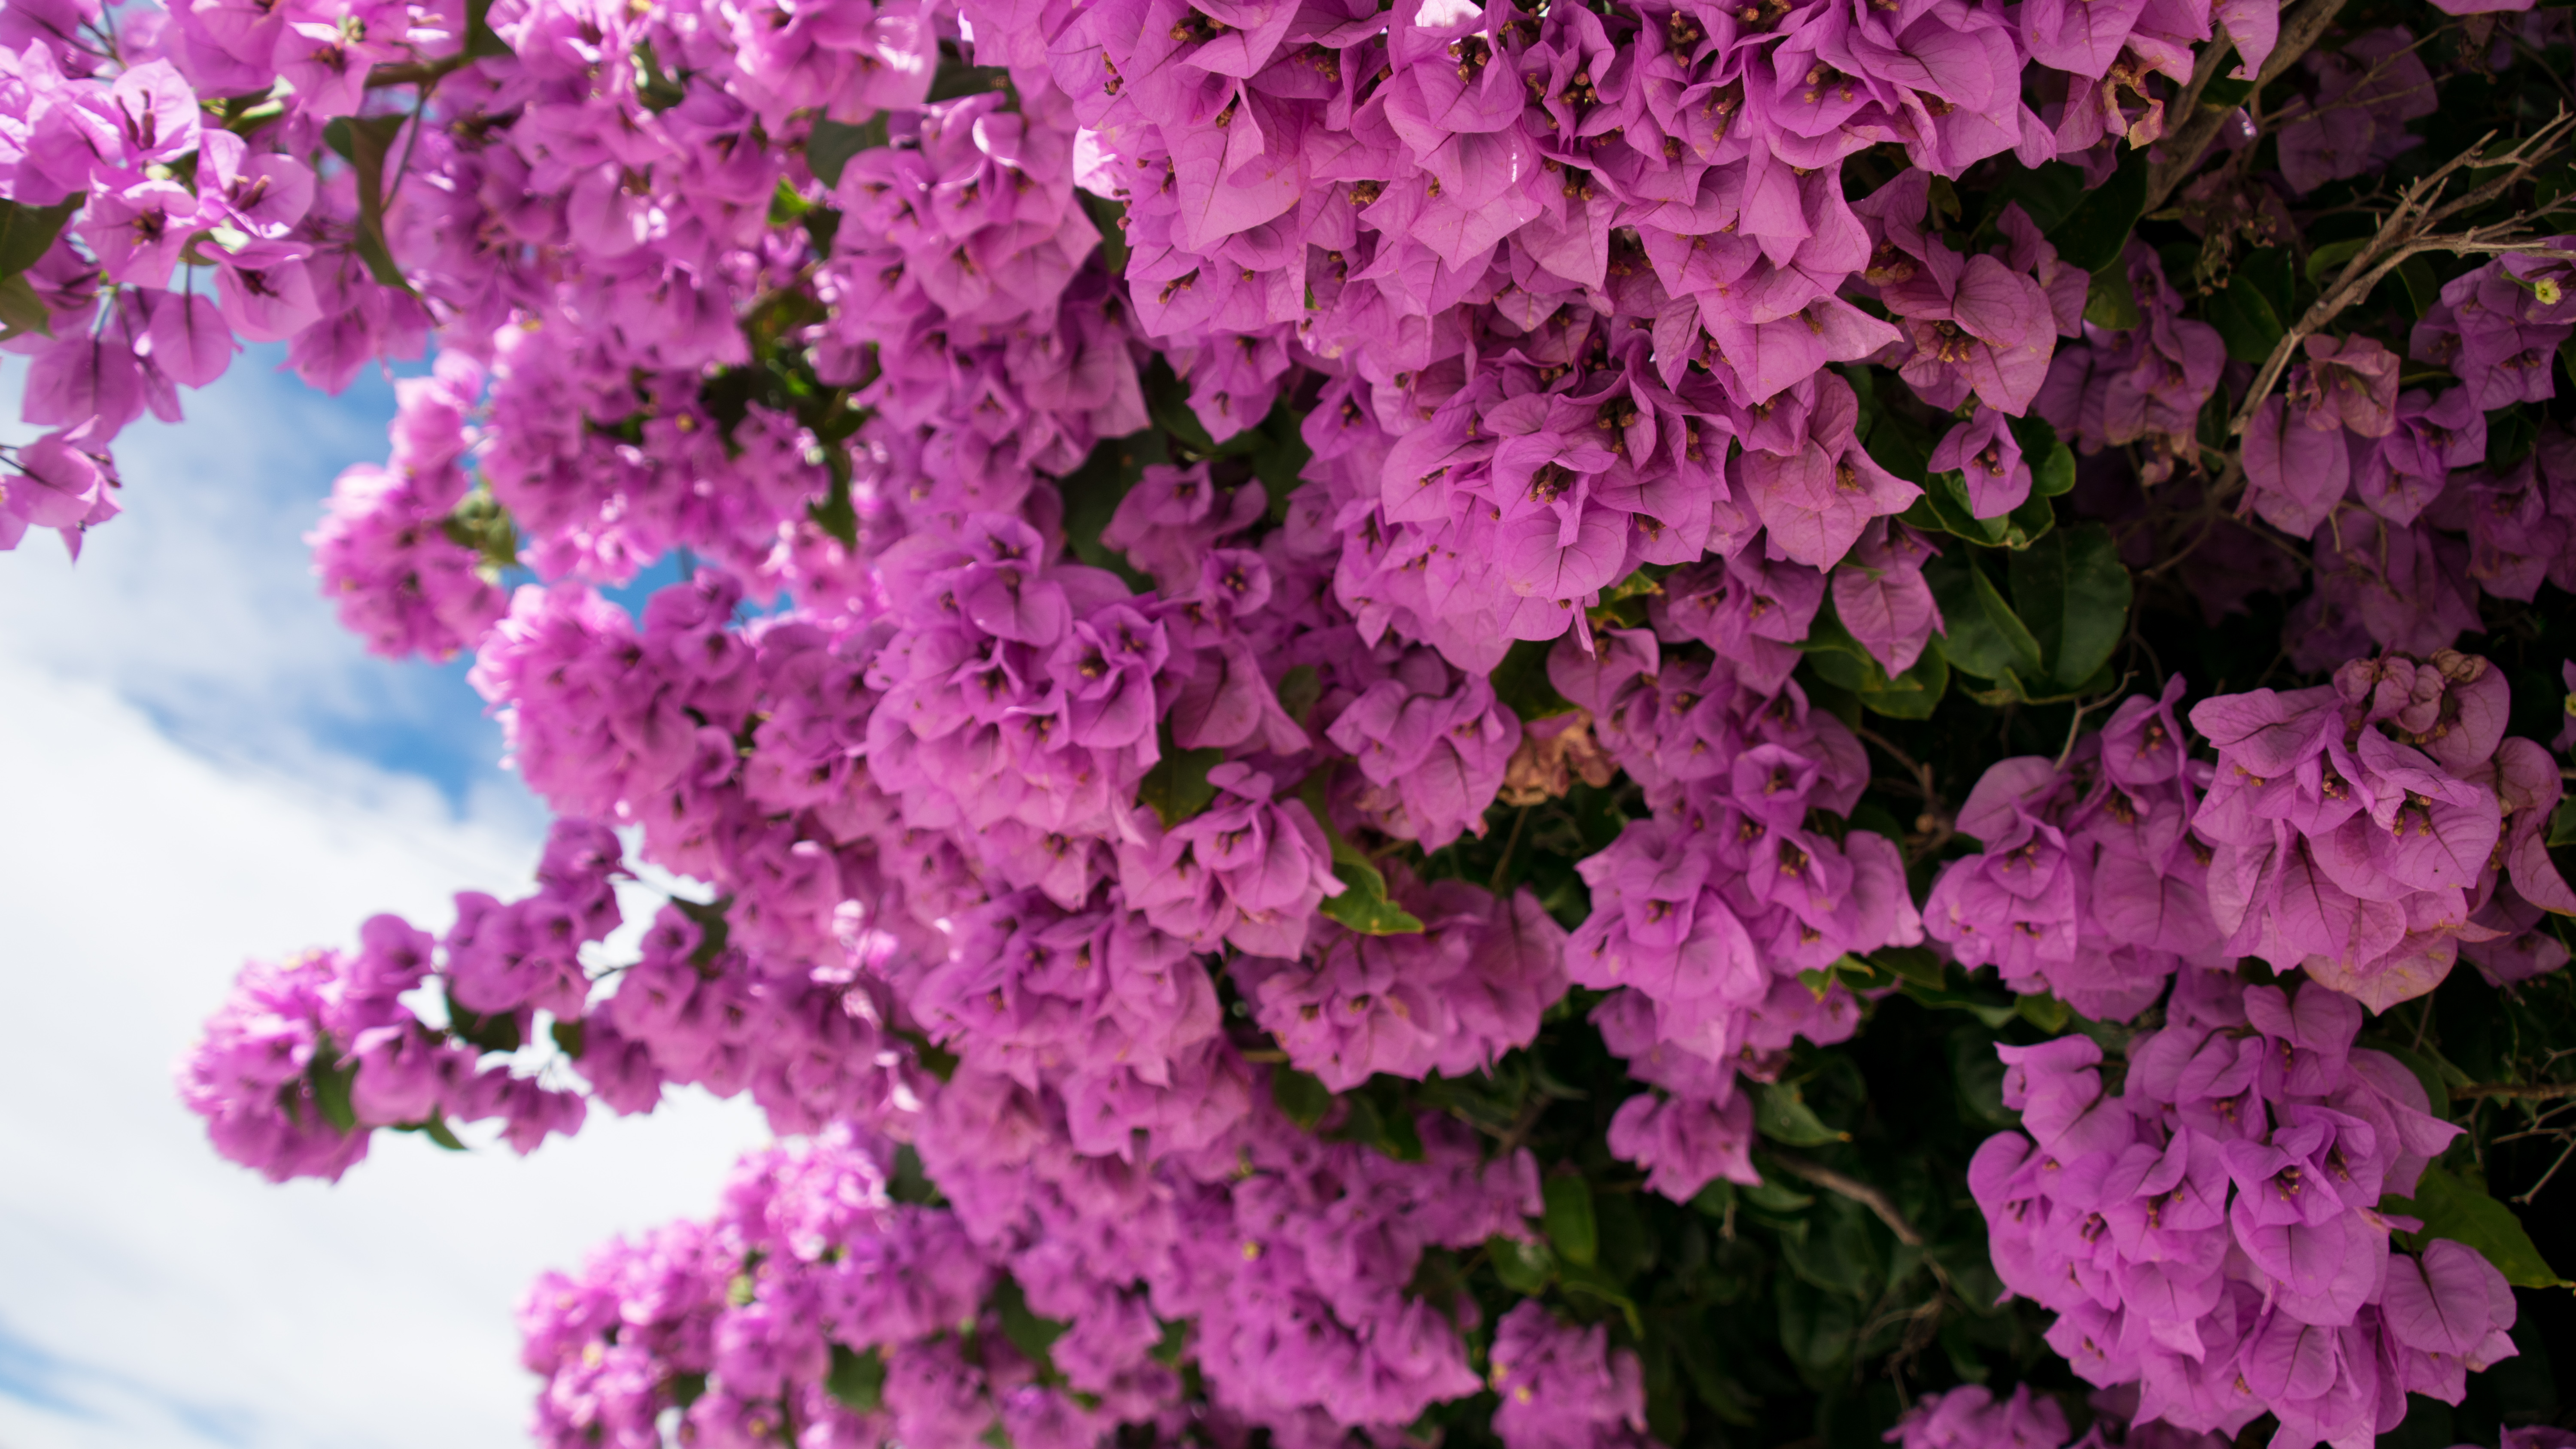 Bougainvillea Wallpaper Wallpaper Flowers Pink Nature Bougainvillea 6000x3375